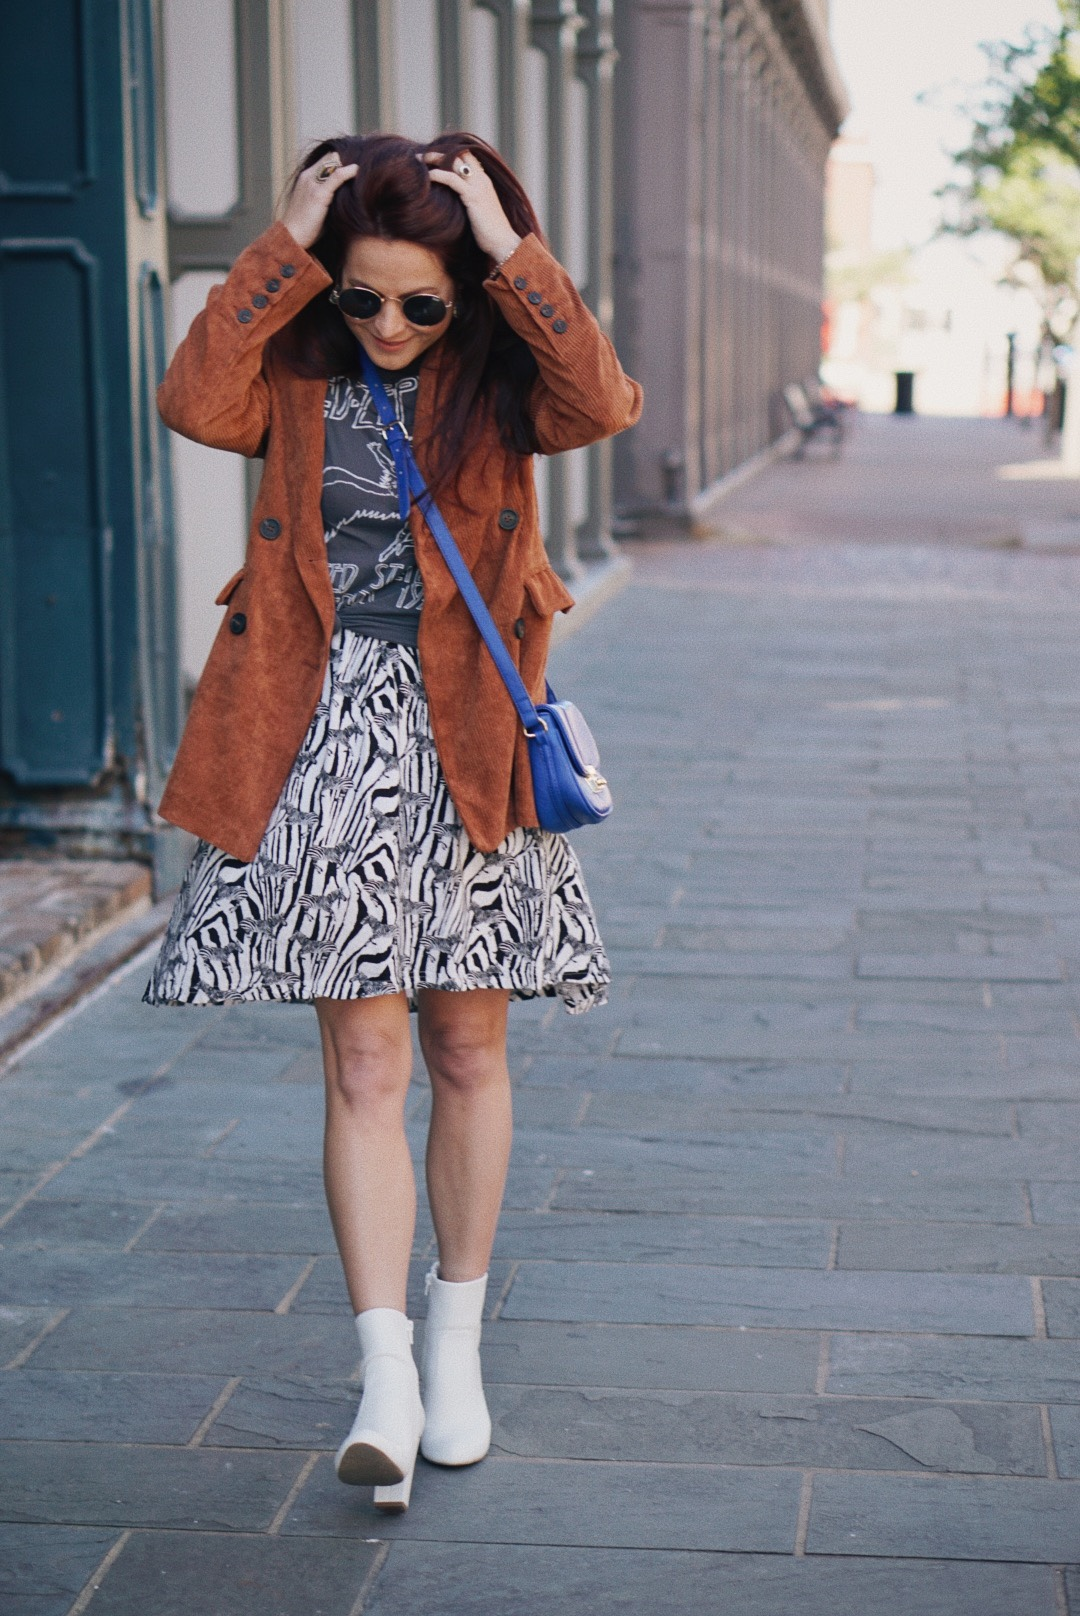 color mixing style, bold styling, ble bags, white booties, animal print outfits, corduroy blazer outfit ideas